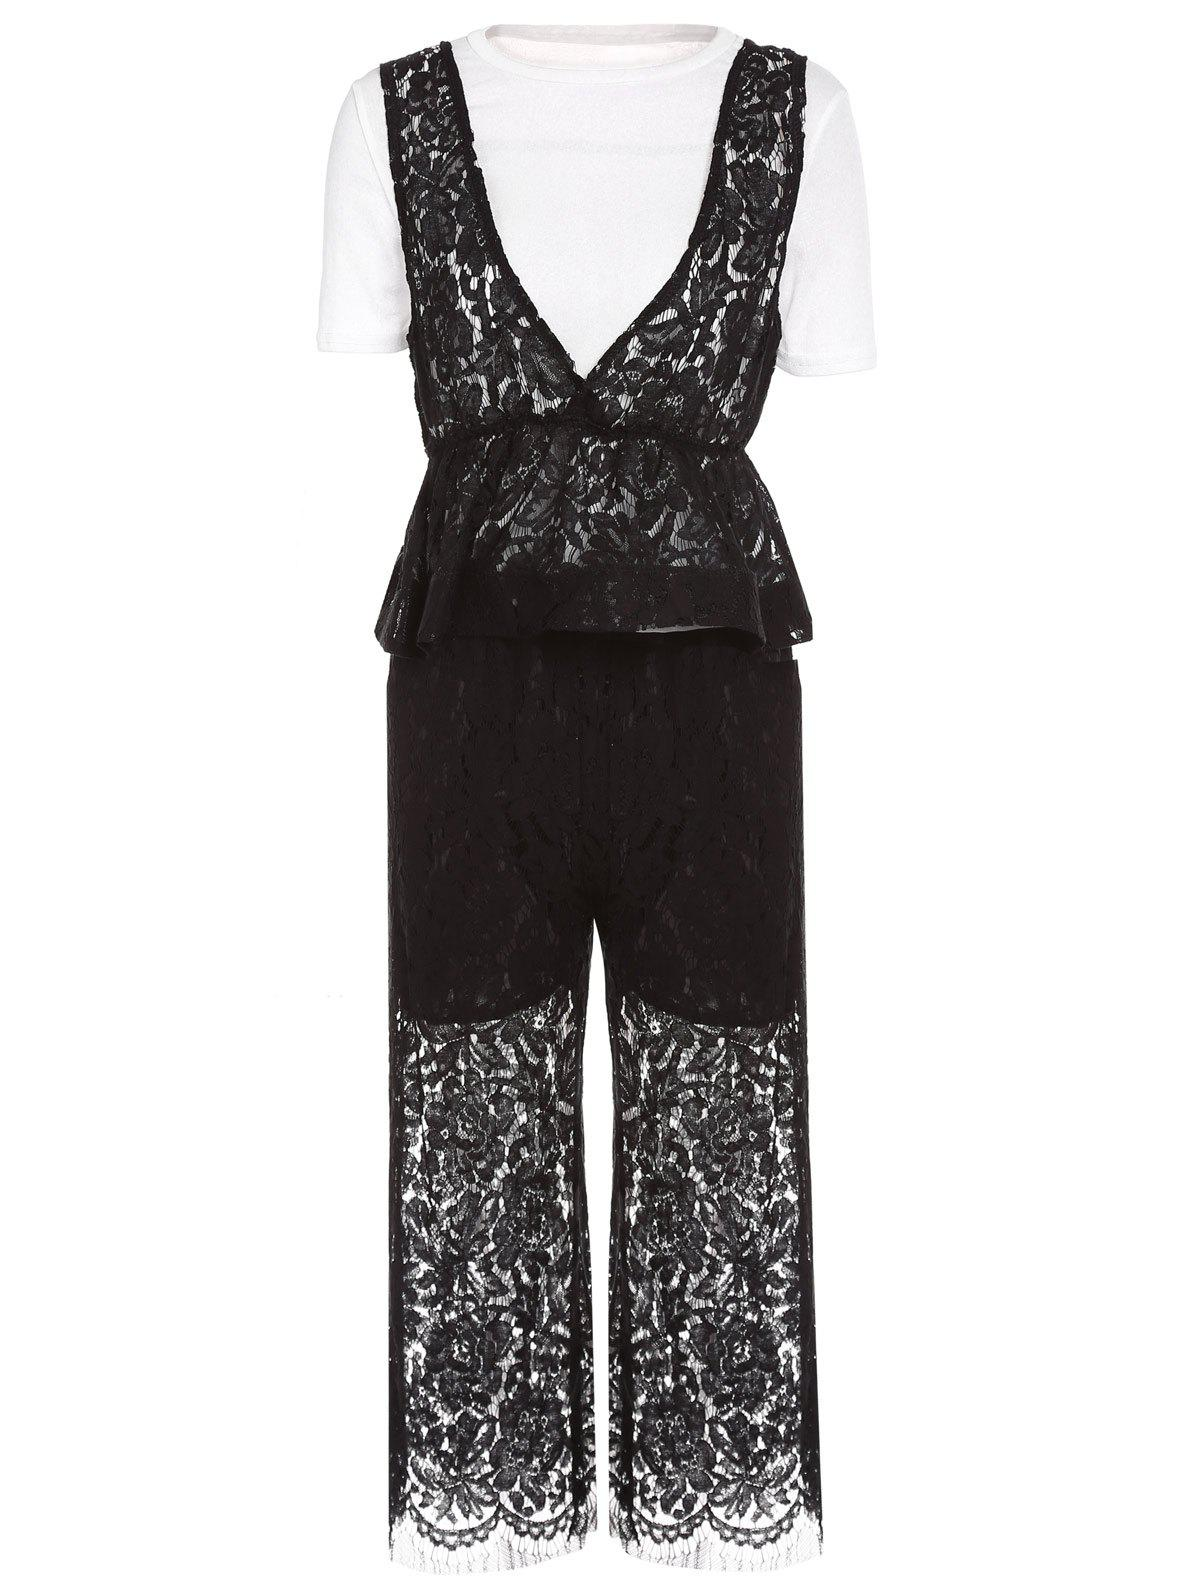 Elegant WhiteT-Shirt + Hollow Out Lace Tank Top + Loose-Fitting Pants Womens Three-Piece SuitWomen<br><br><br>Size: ONE SIZE(FIT SIZE XS TO M)<br>Color: WHITE AND BLACK